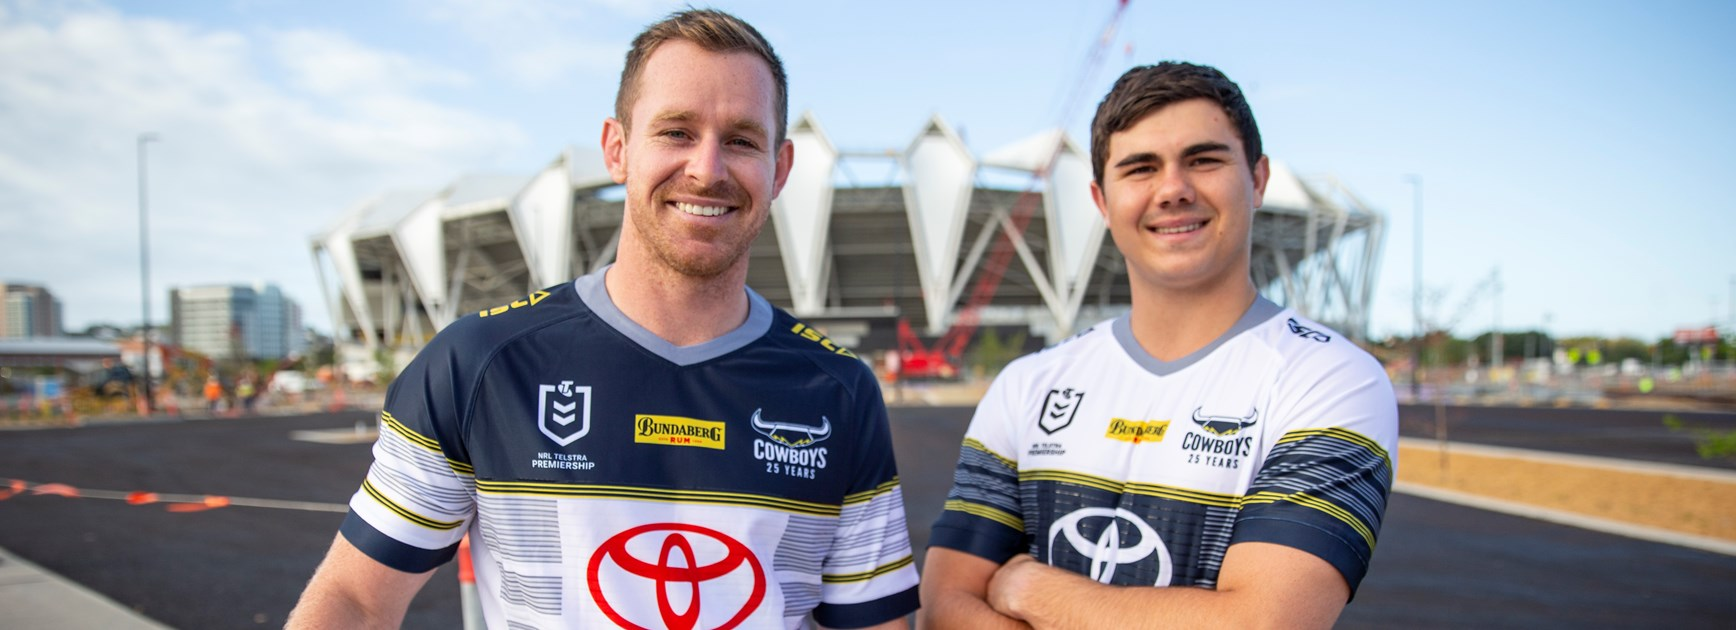 Cowboys launch 2020 jersey